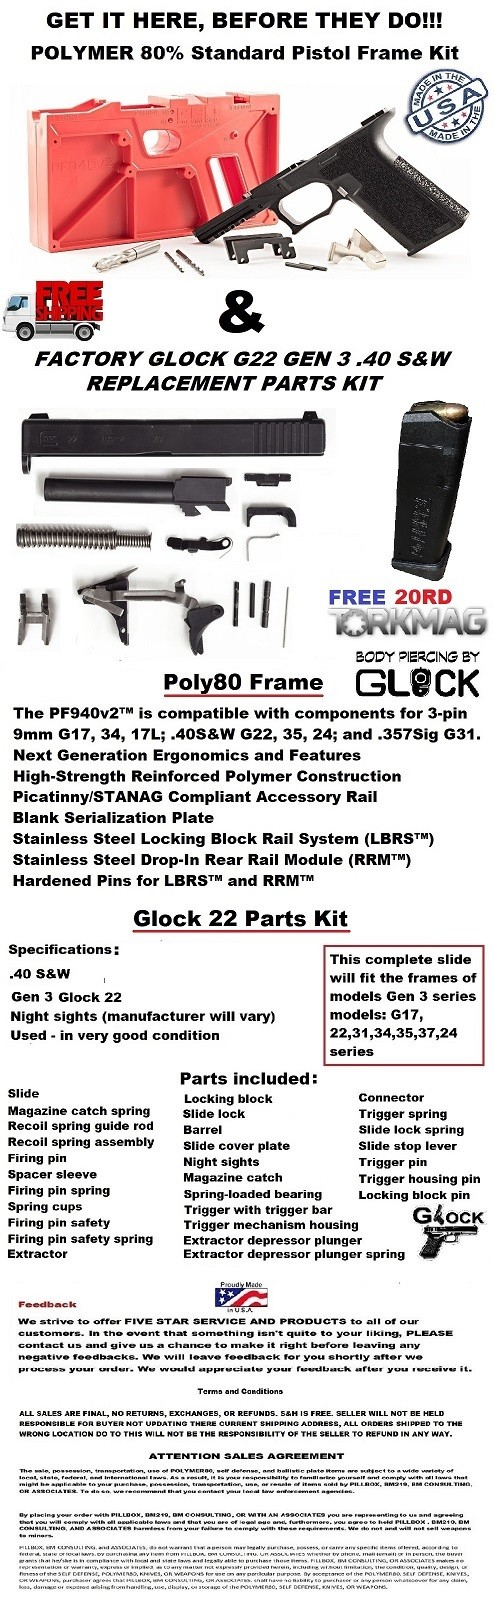 POLYMER80 GLOCK 22 COMPLETE KIT W/ FREE - Glock Parts at